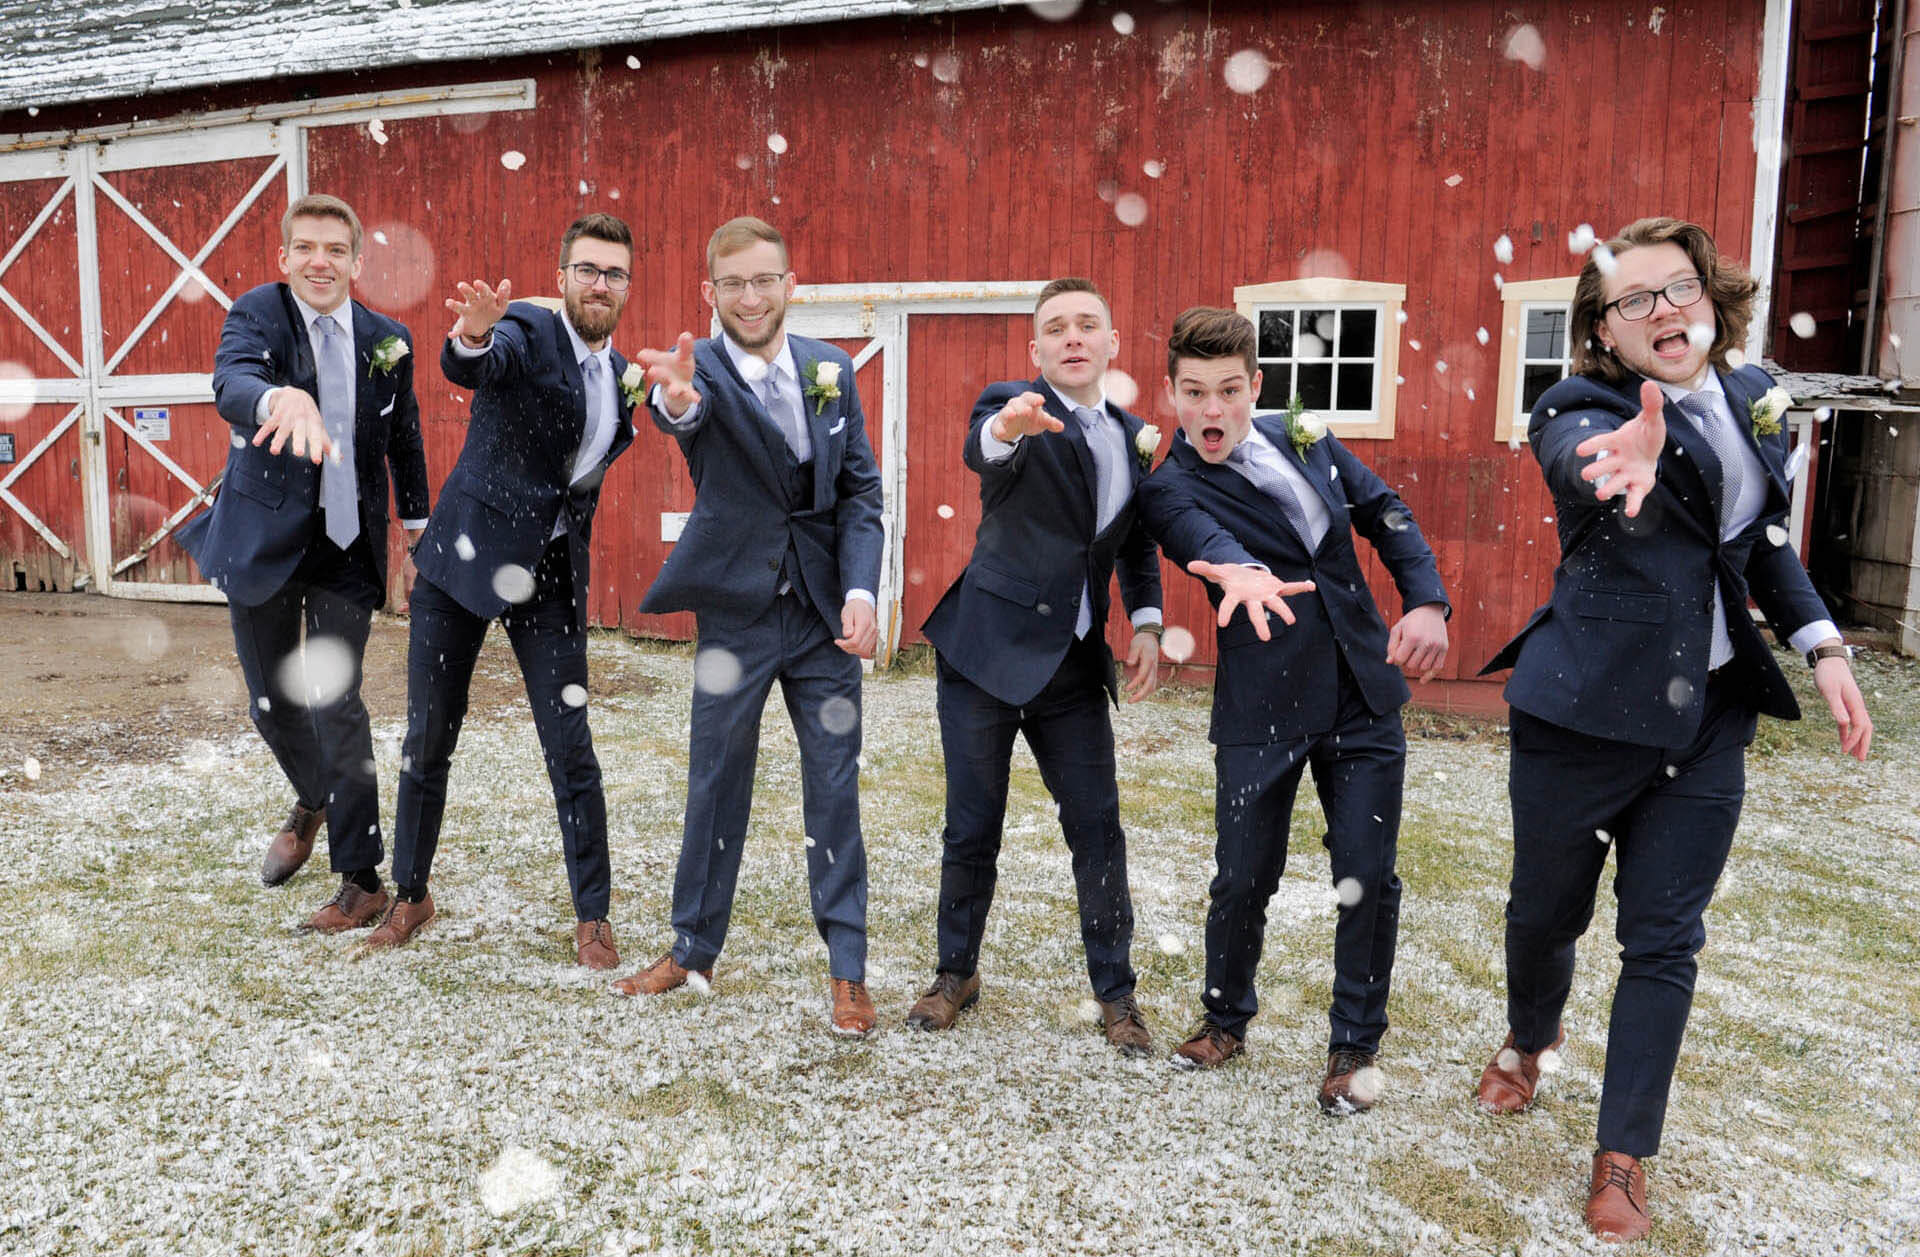 The groomsmen toss some snow at the wedding photographer before the groom's wedding in Rochester, Michigan.